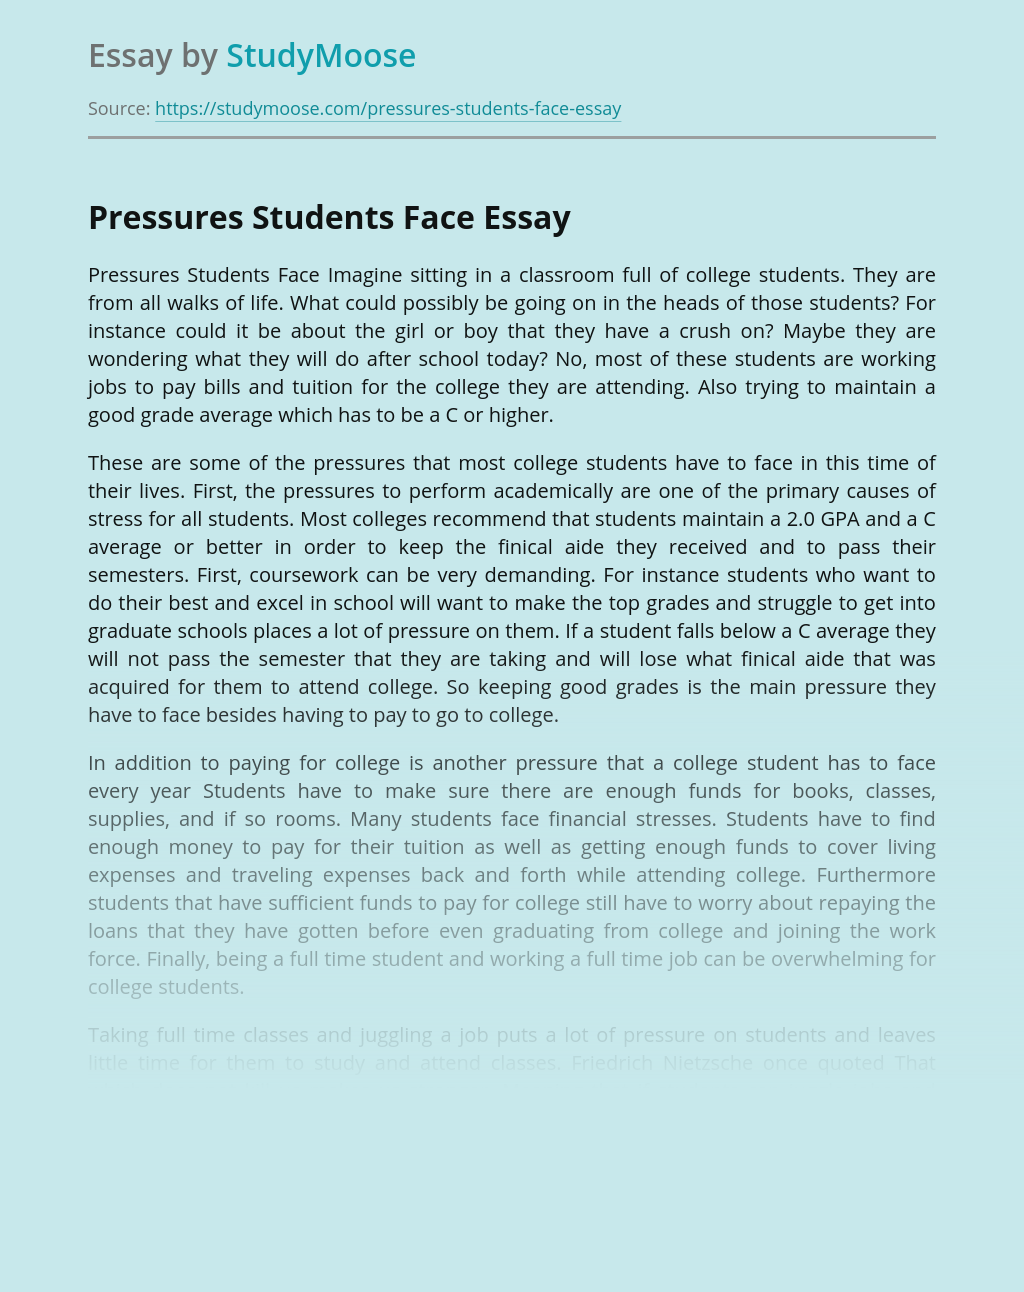 Pressures Students Face